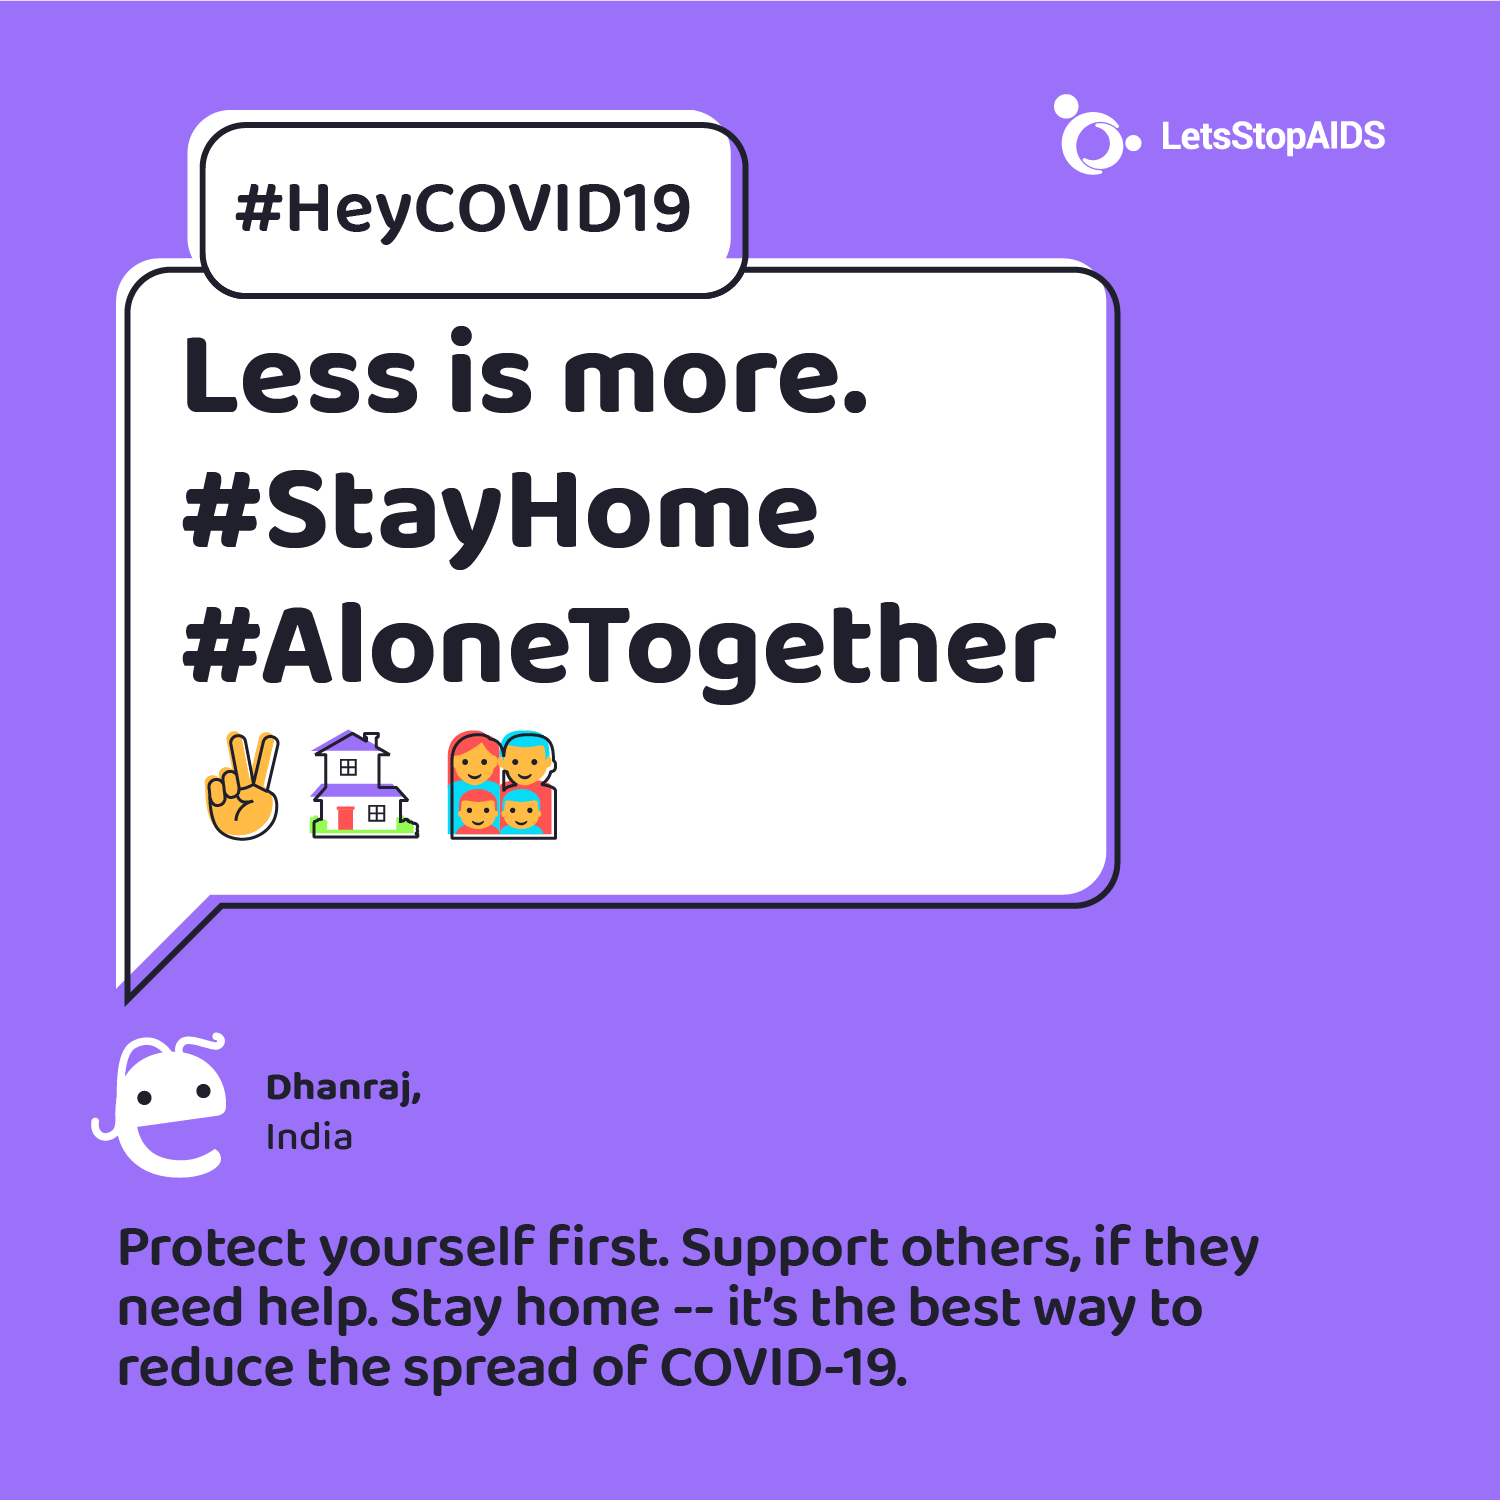 Less is more. #StayHome #AloneTogether